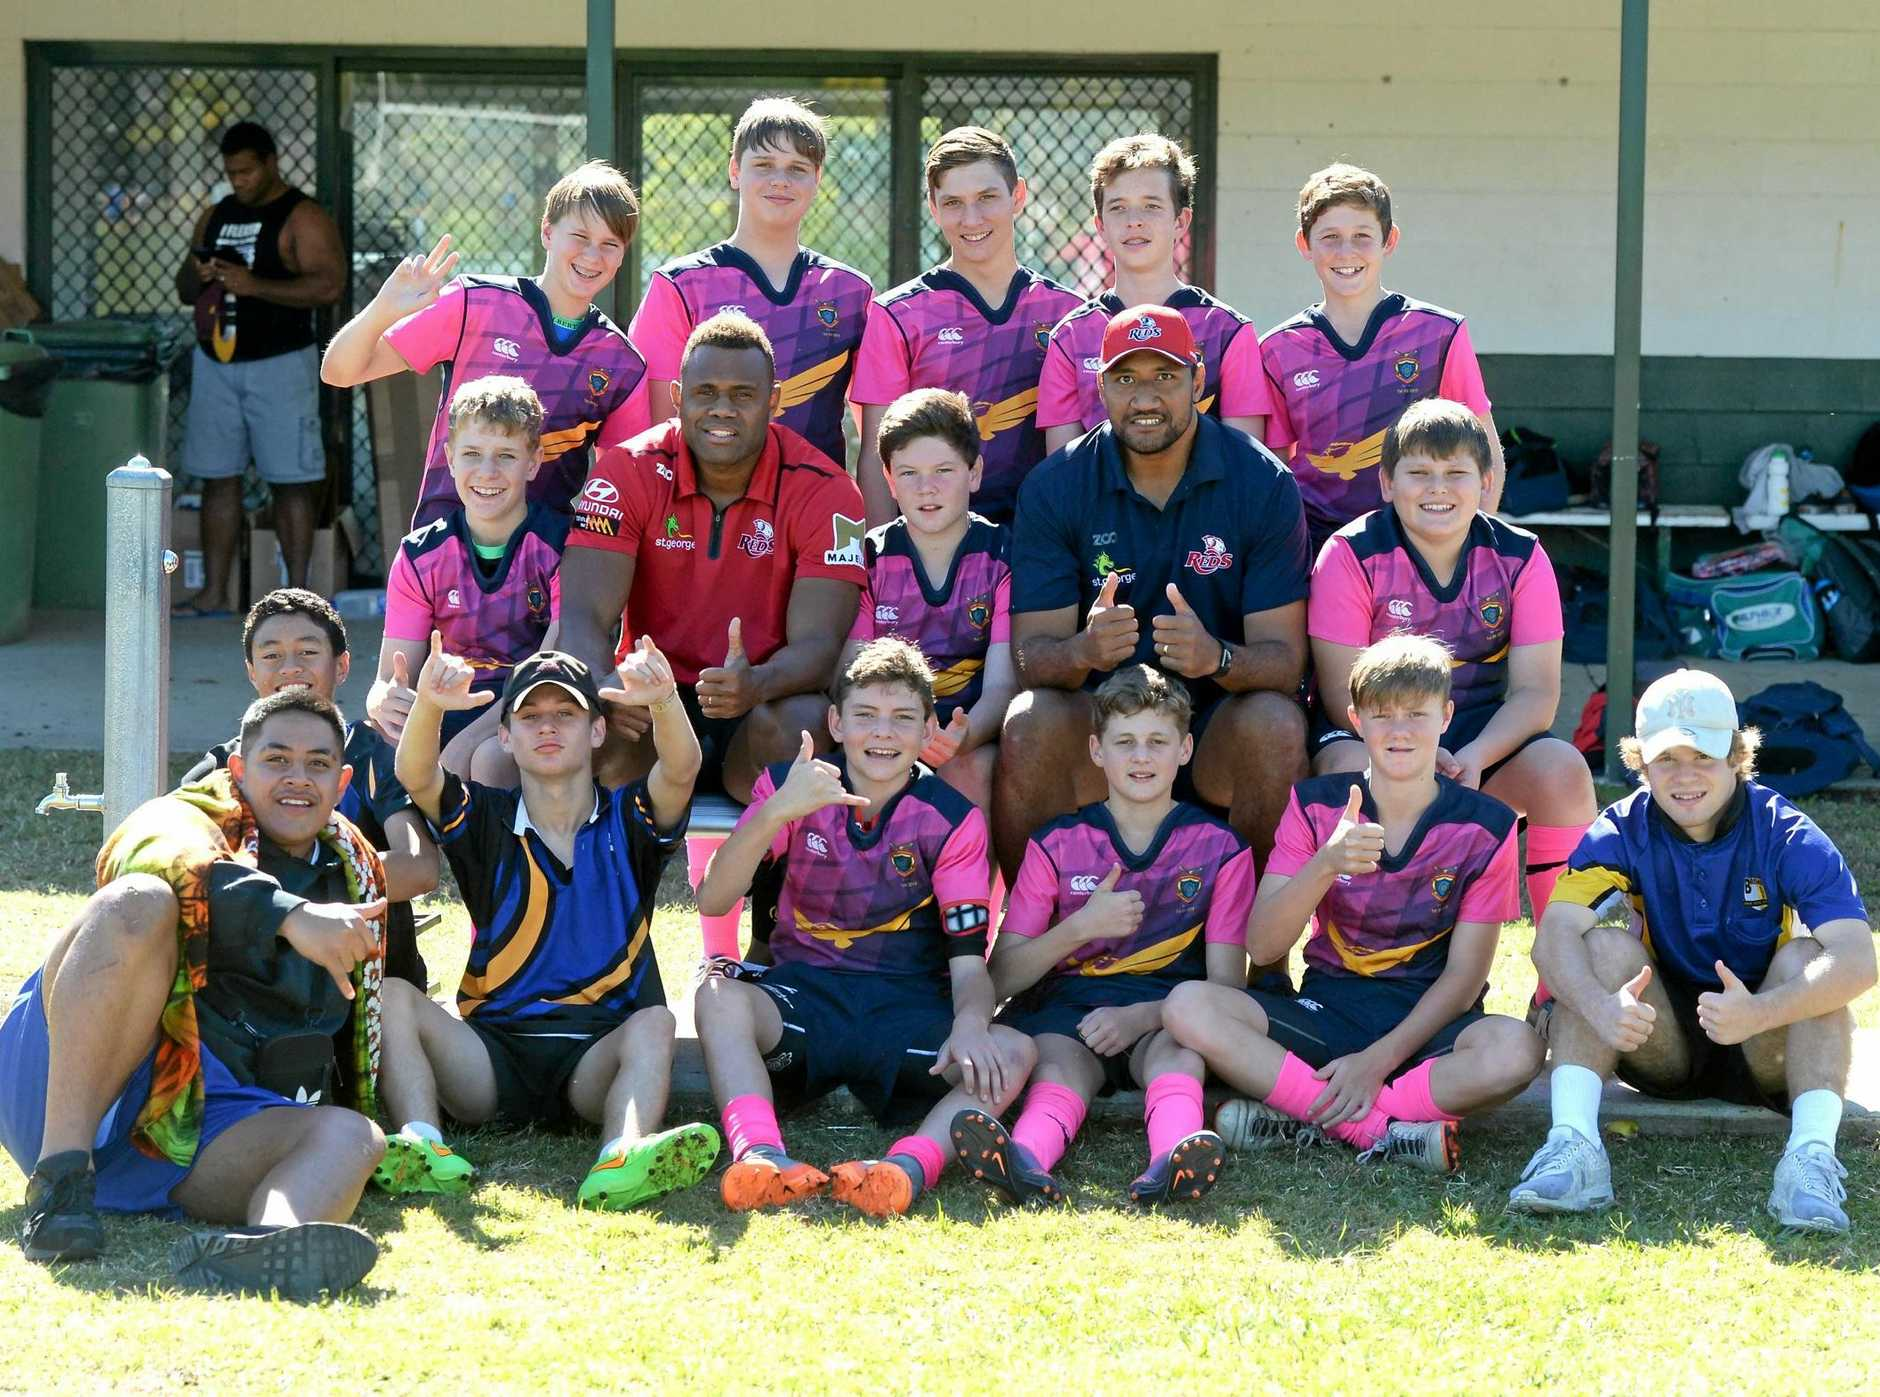 NEXT GENERATION: Queensland Reds winger Eto Nabuli and QRU Development Officer Josh Afu mix with kids at the CISSSA Rugby 7s tournament at the Ipswich Rangers field at Woodend.